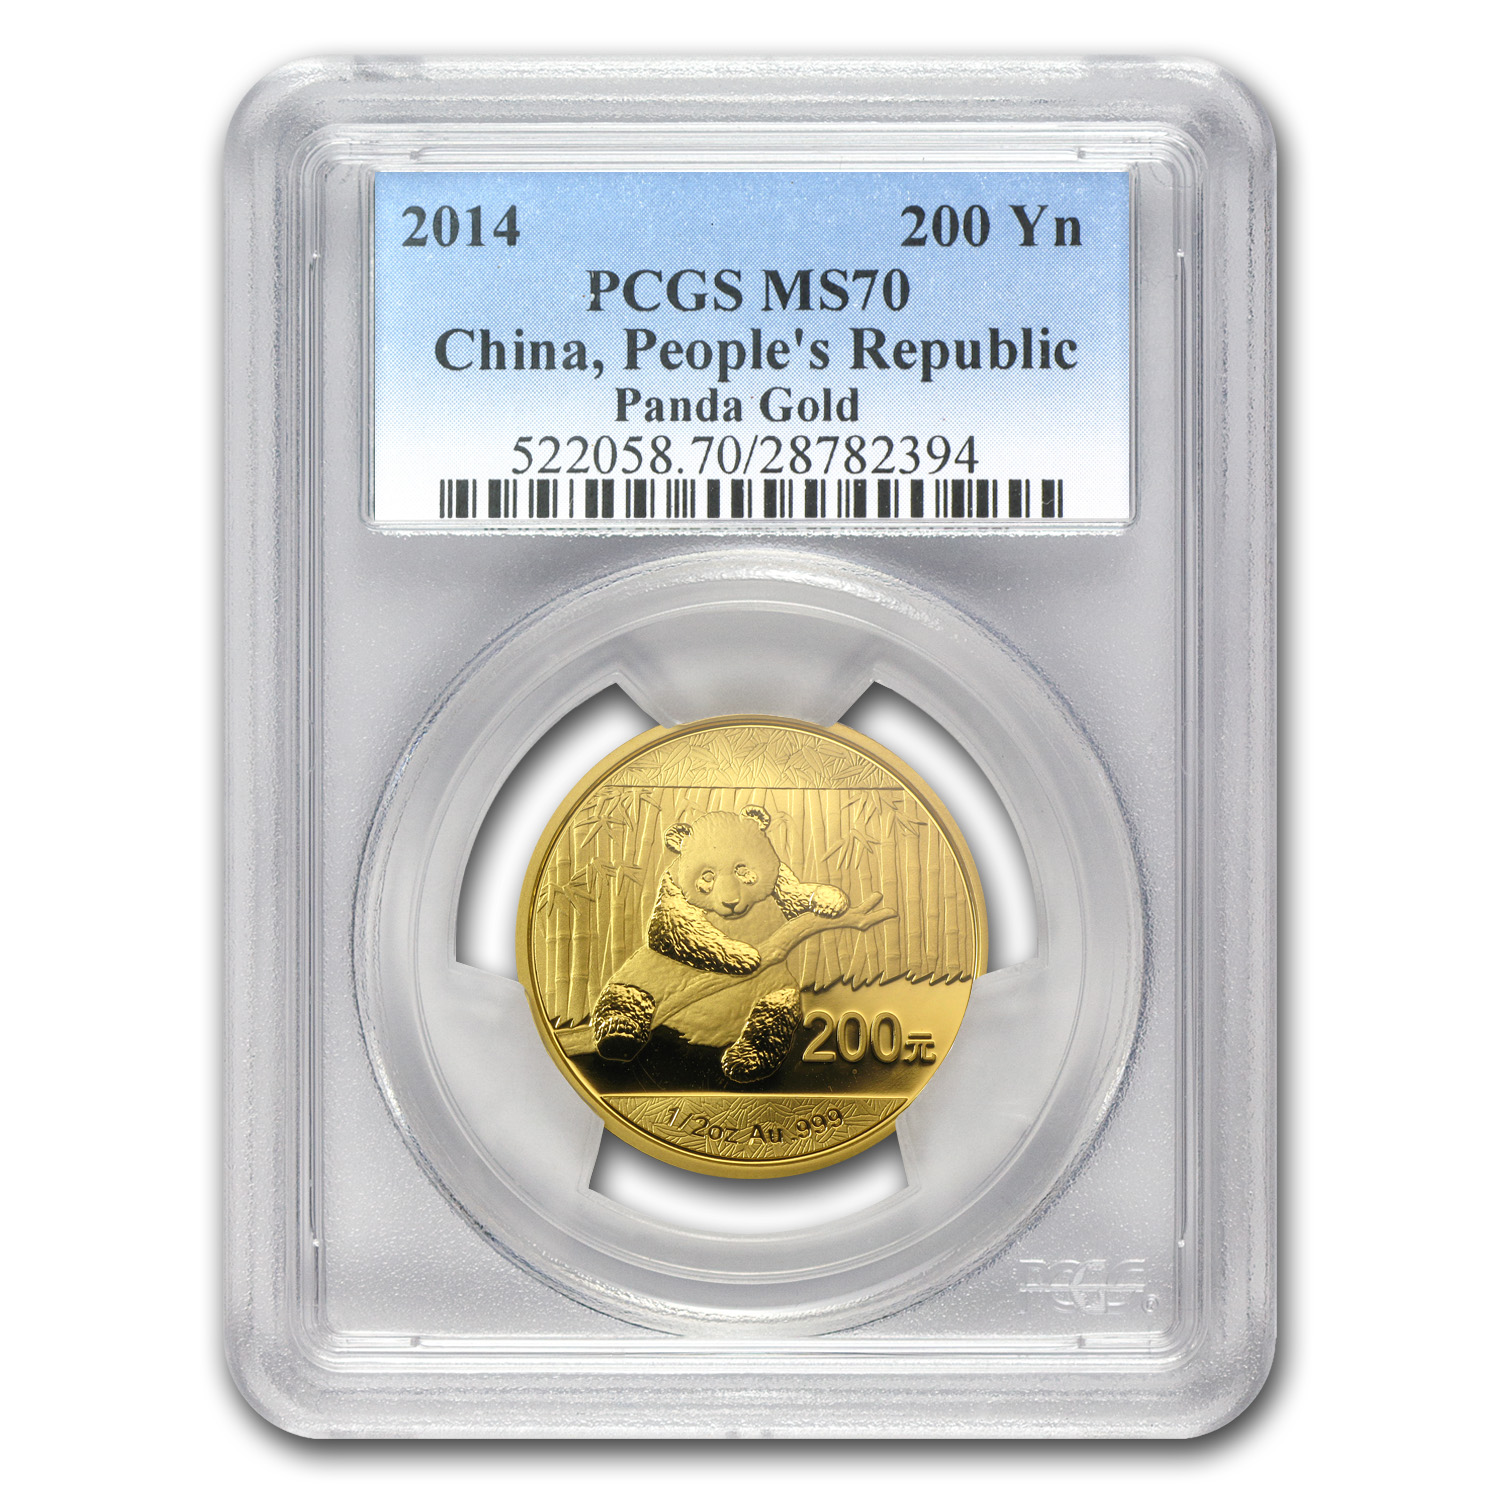 2014 China 1/2 oz Gold Panda MS-70 PCGS